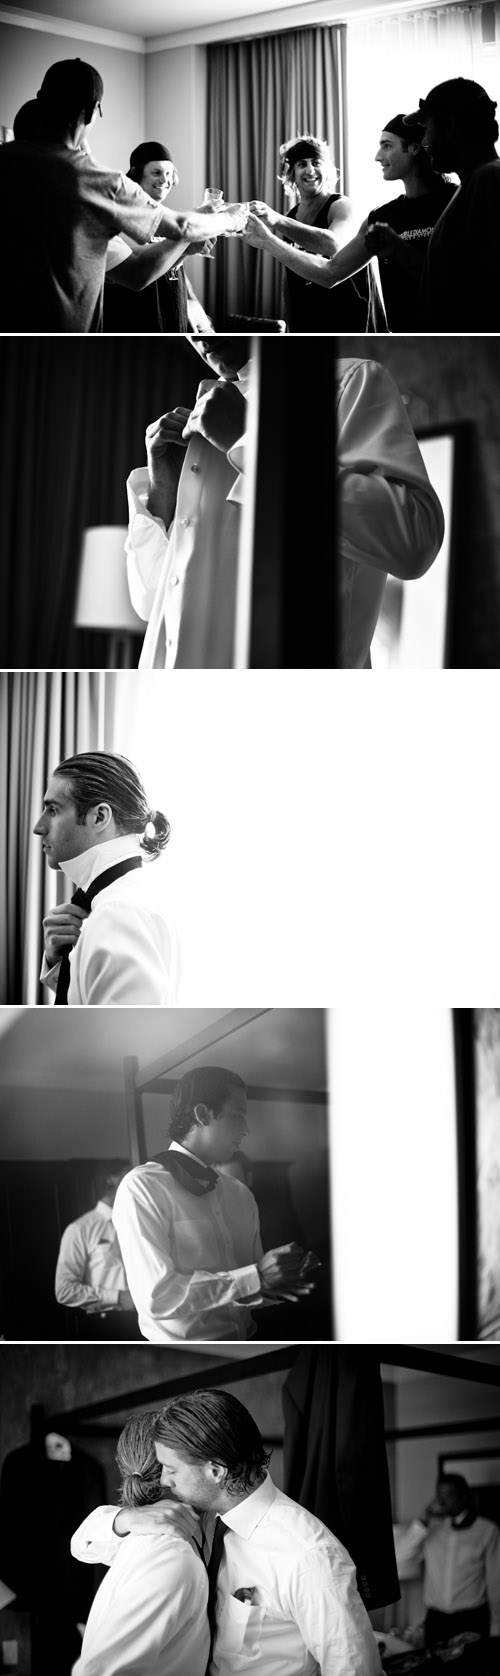 A groom and his groomsmen getting ready on the wedding day, creative Colorado wedding photos from Chowen Photography